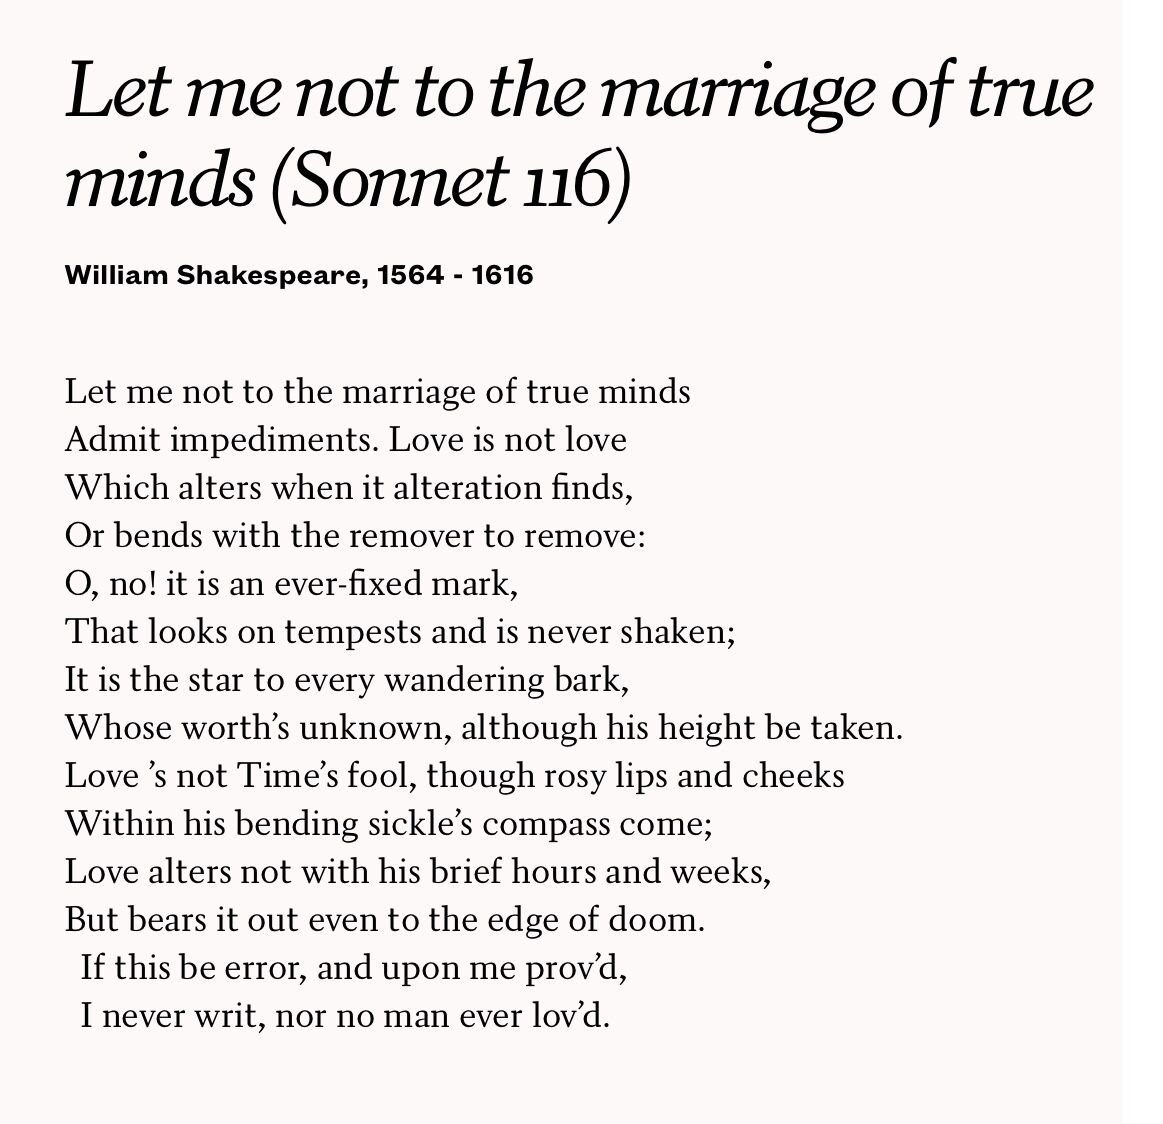 shakespeare sonnet 116 Sonnet 116, by shakespeare  shakespeare sonnet 116:  let me not to the marriage of true minds ~ sonnet 116 william shakespeare with text.